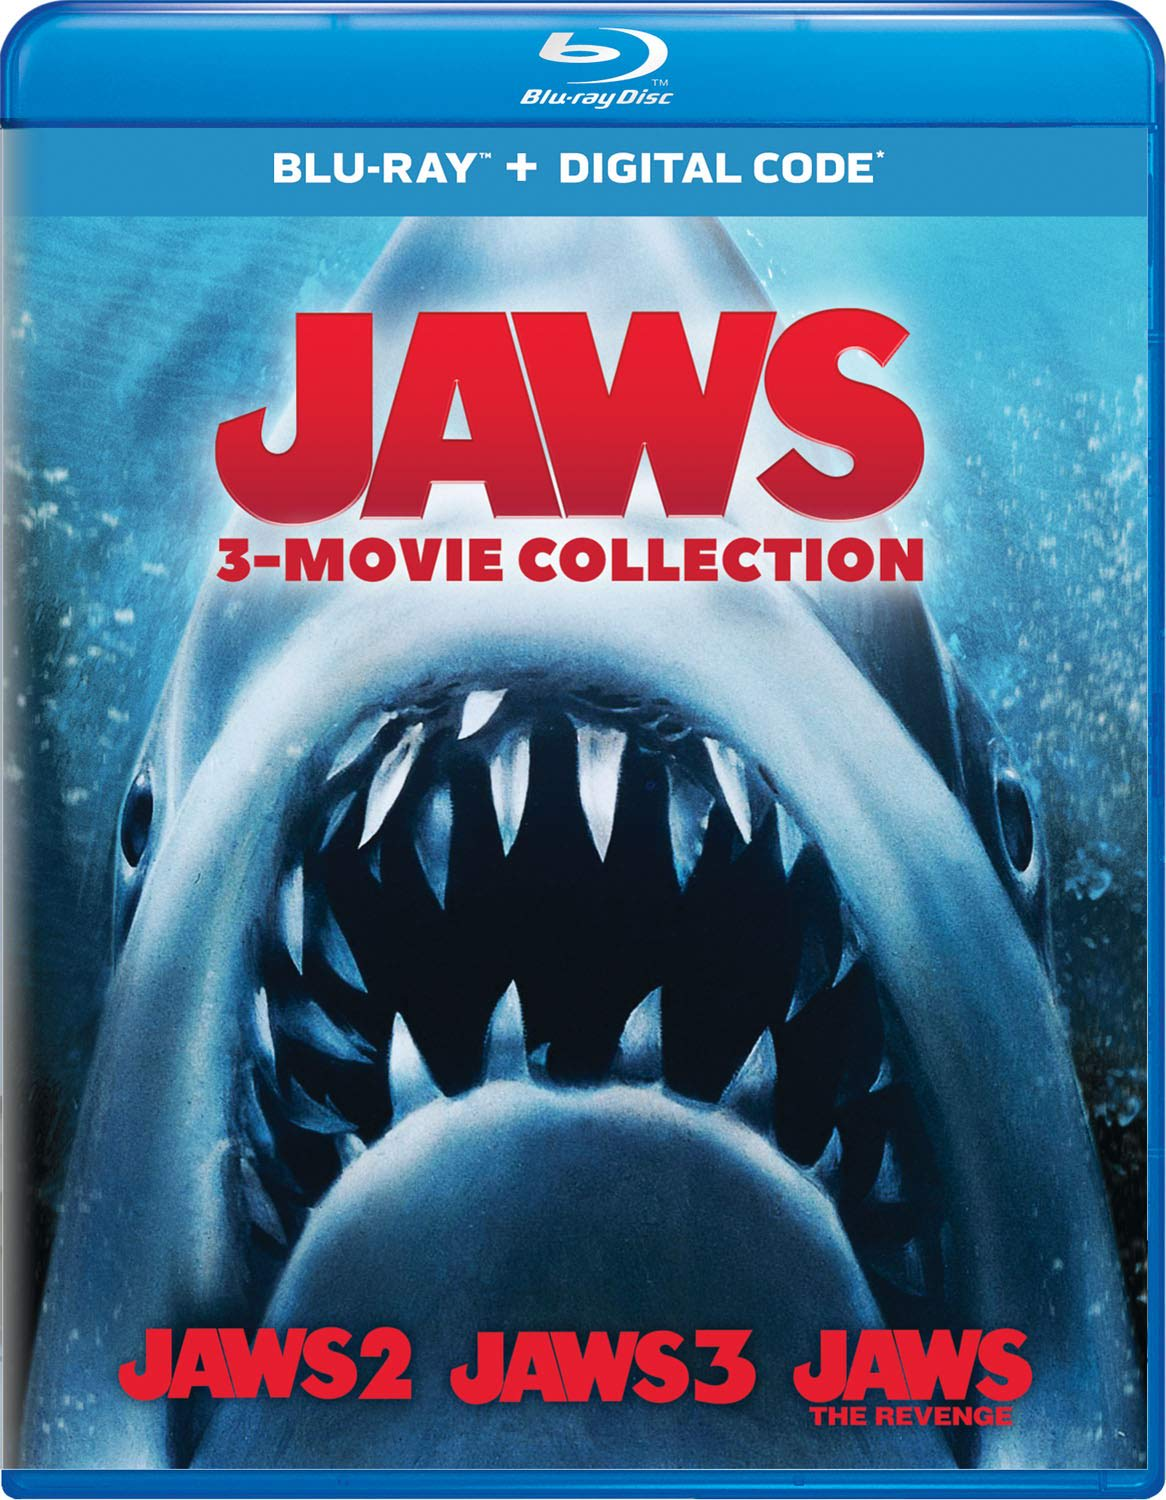 Jaws 2/Jaws 3/Jaws: The Revenge [Blu-ray]